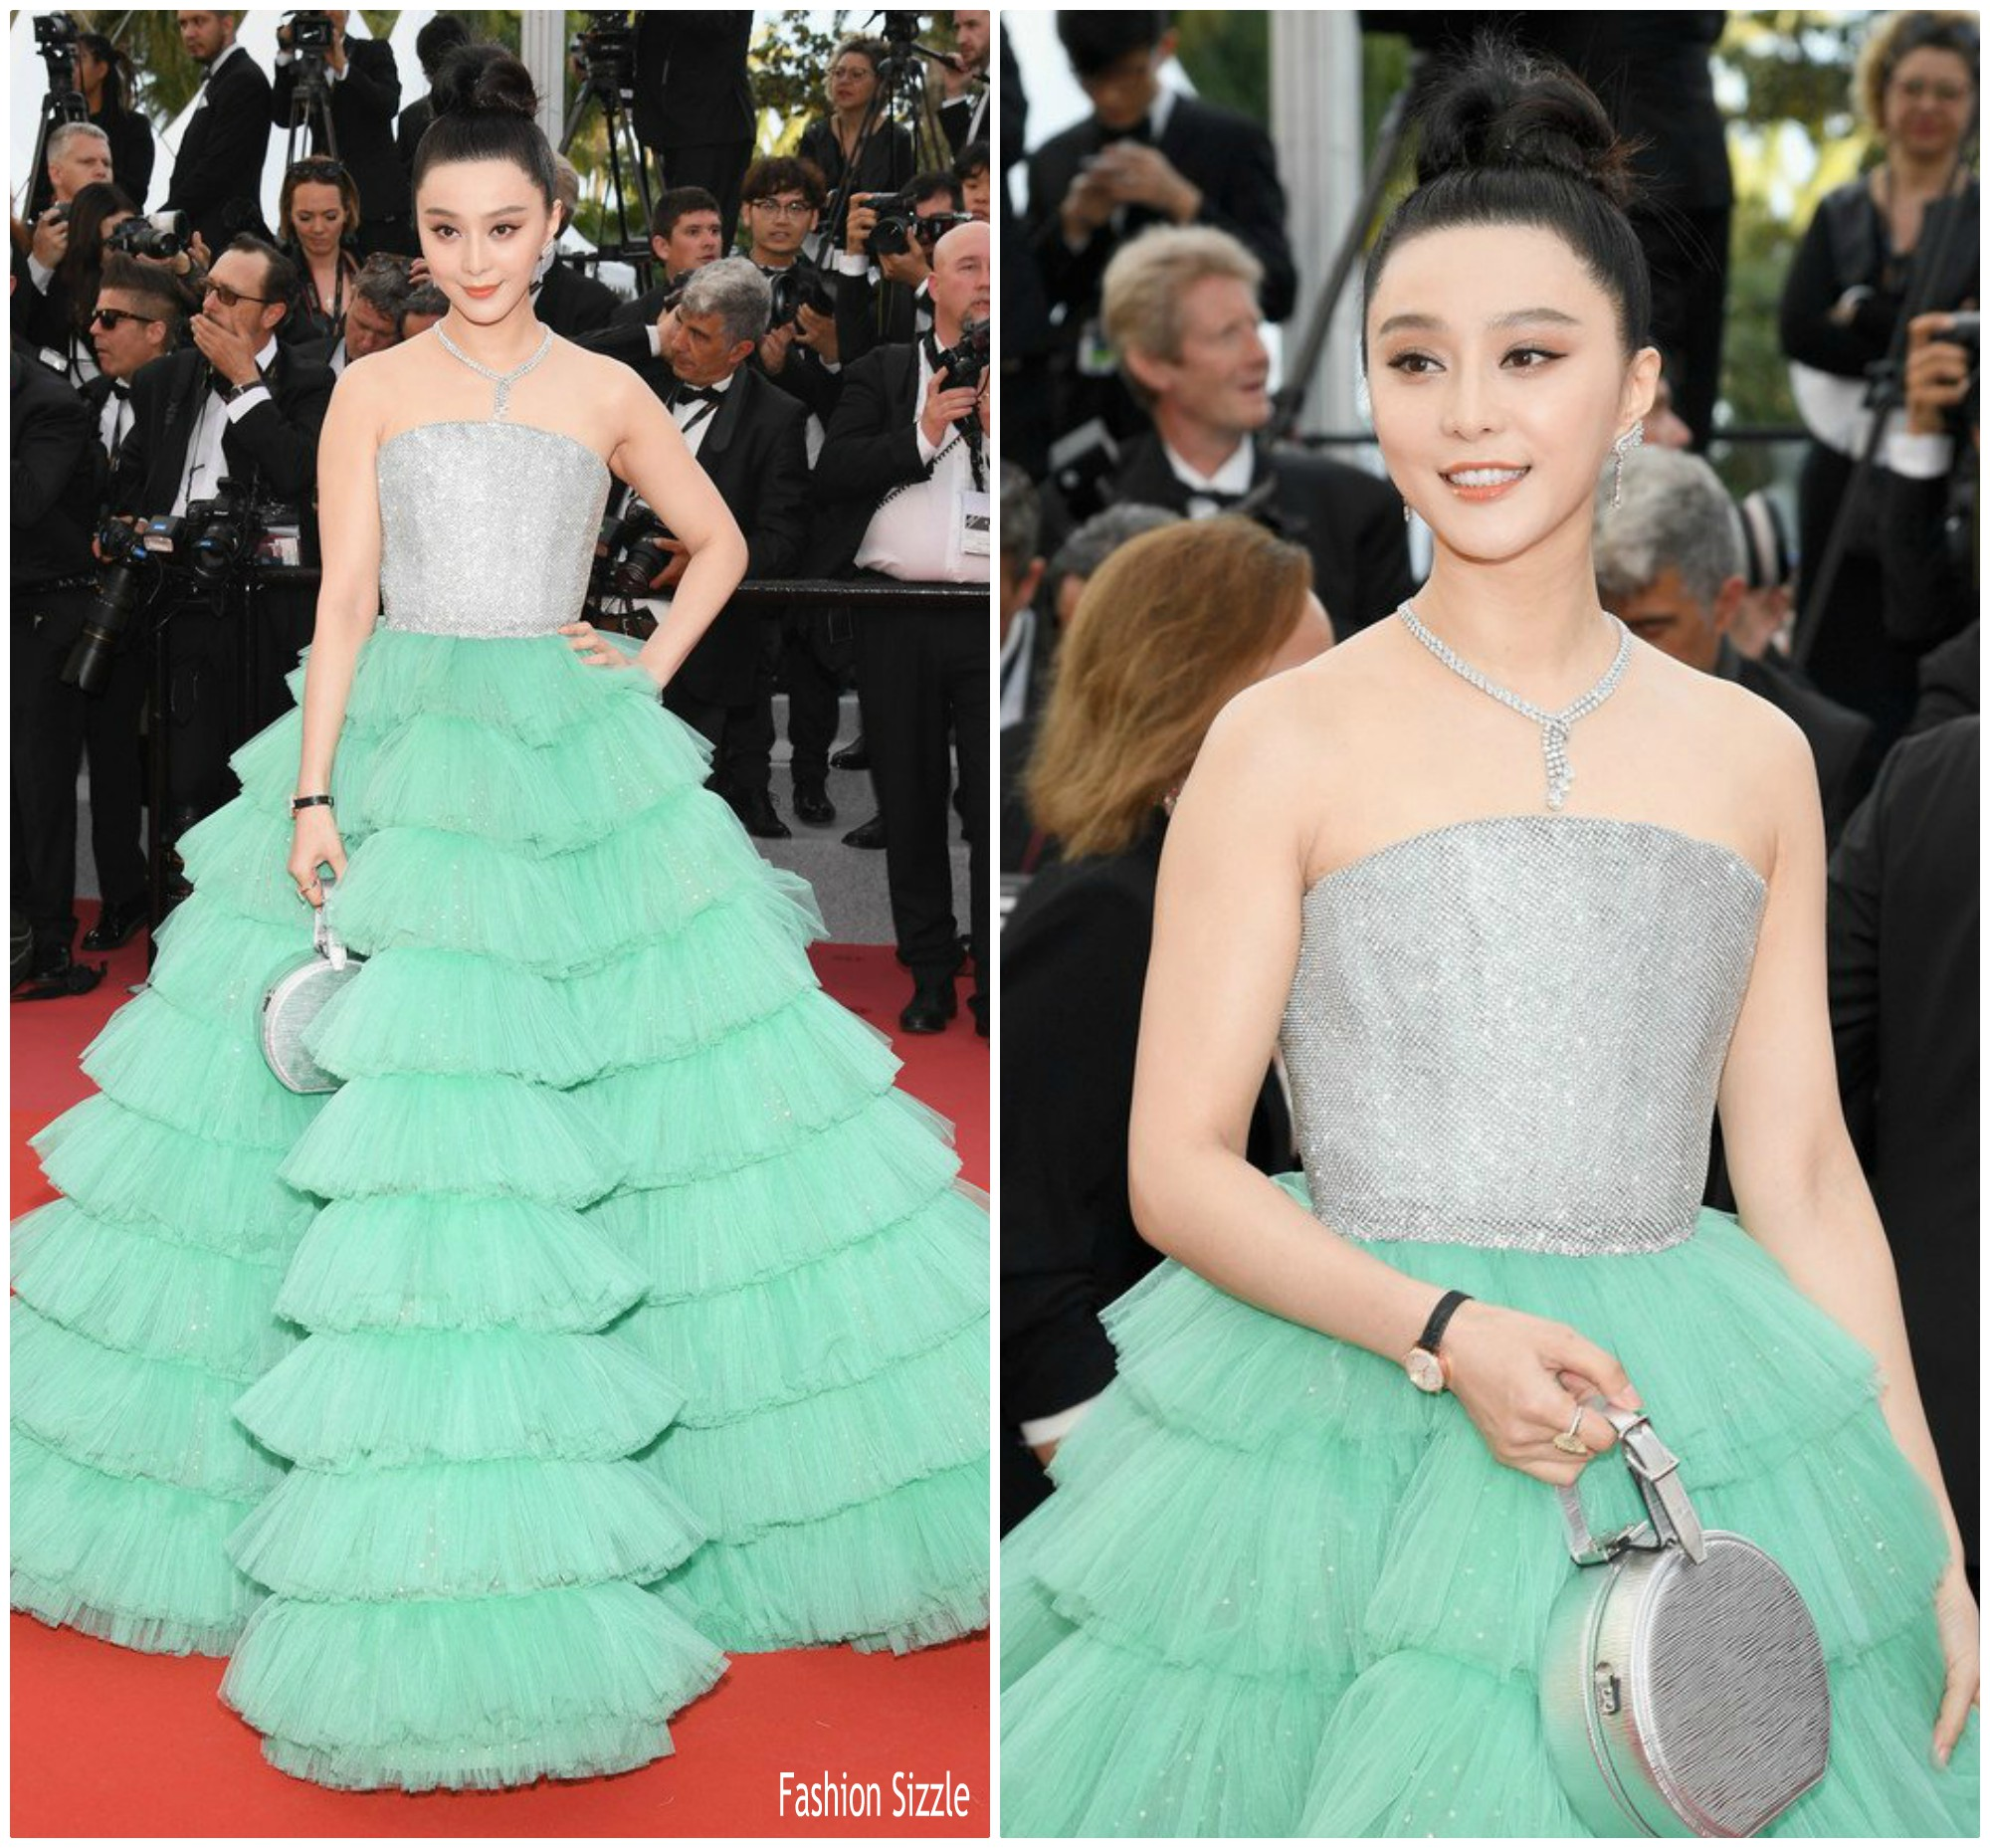 fan-bingbing-in-ali-karoui-couture-everybody-knows-cannes-film-festival-screening